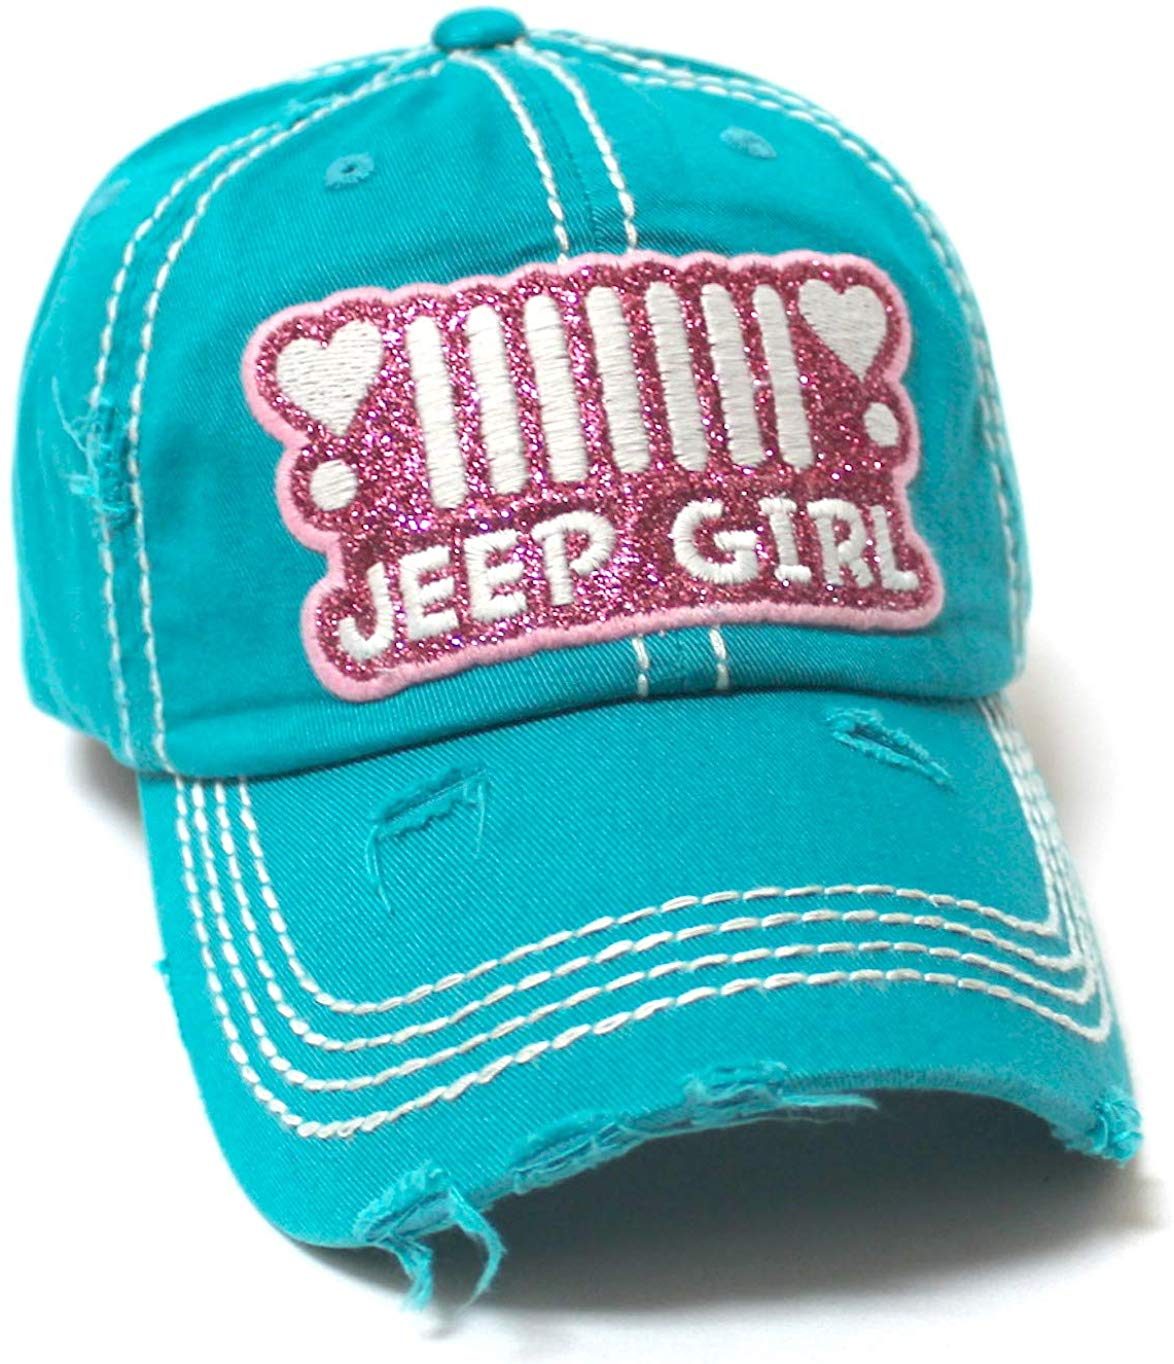 Women's Ballcap Jeep Girl Pink Glitter, Hearts Patch Embroidery Hat, Jewel Turquoise - Caps 'N Vintage